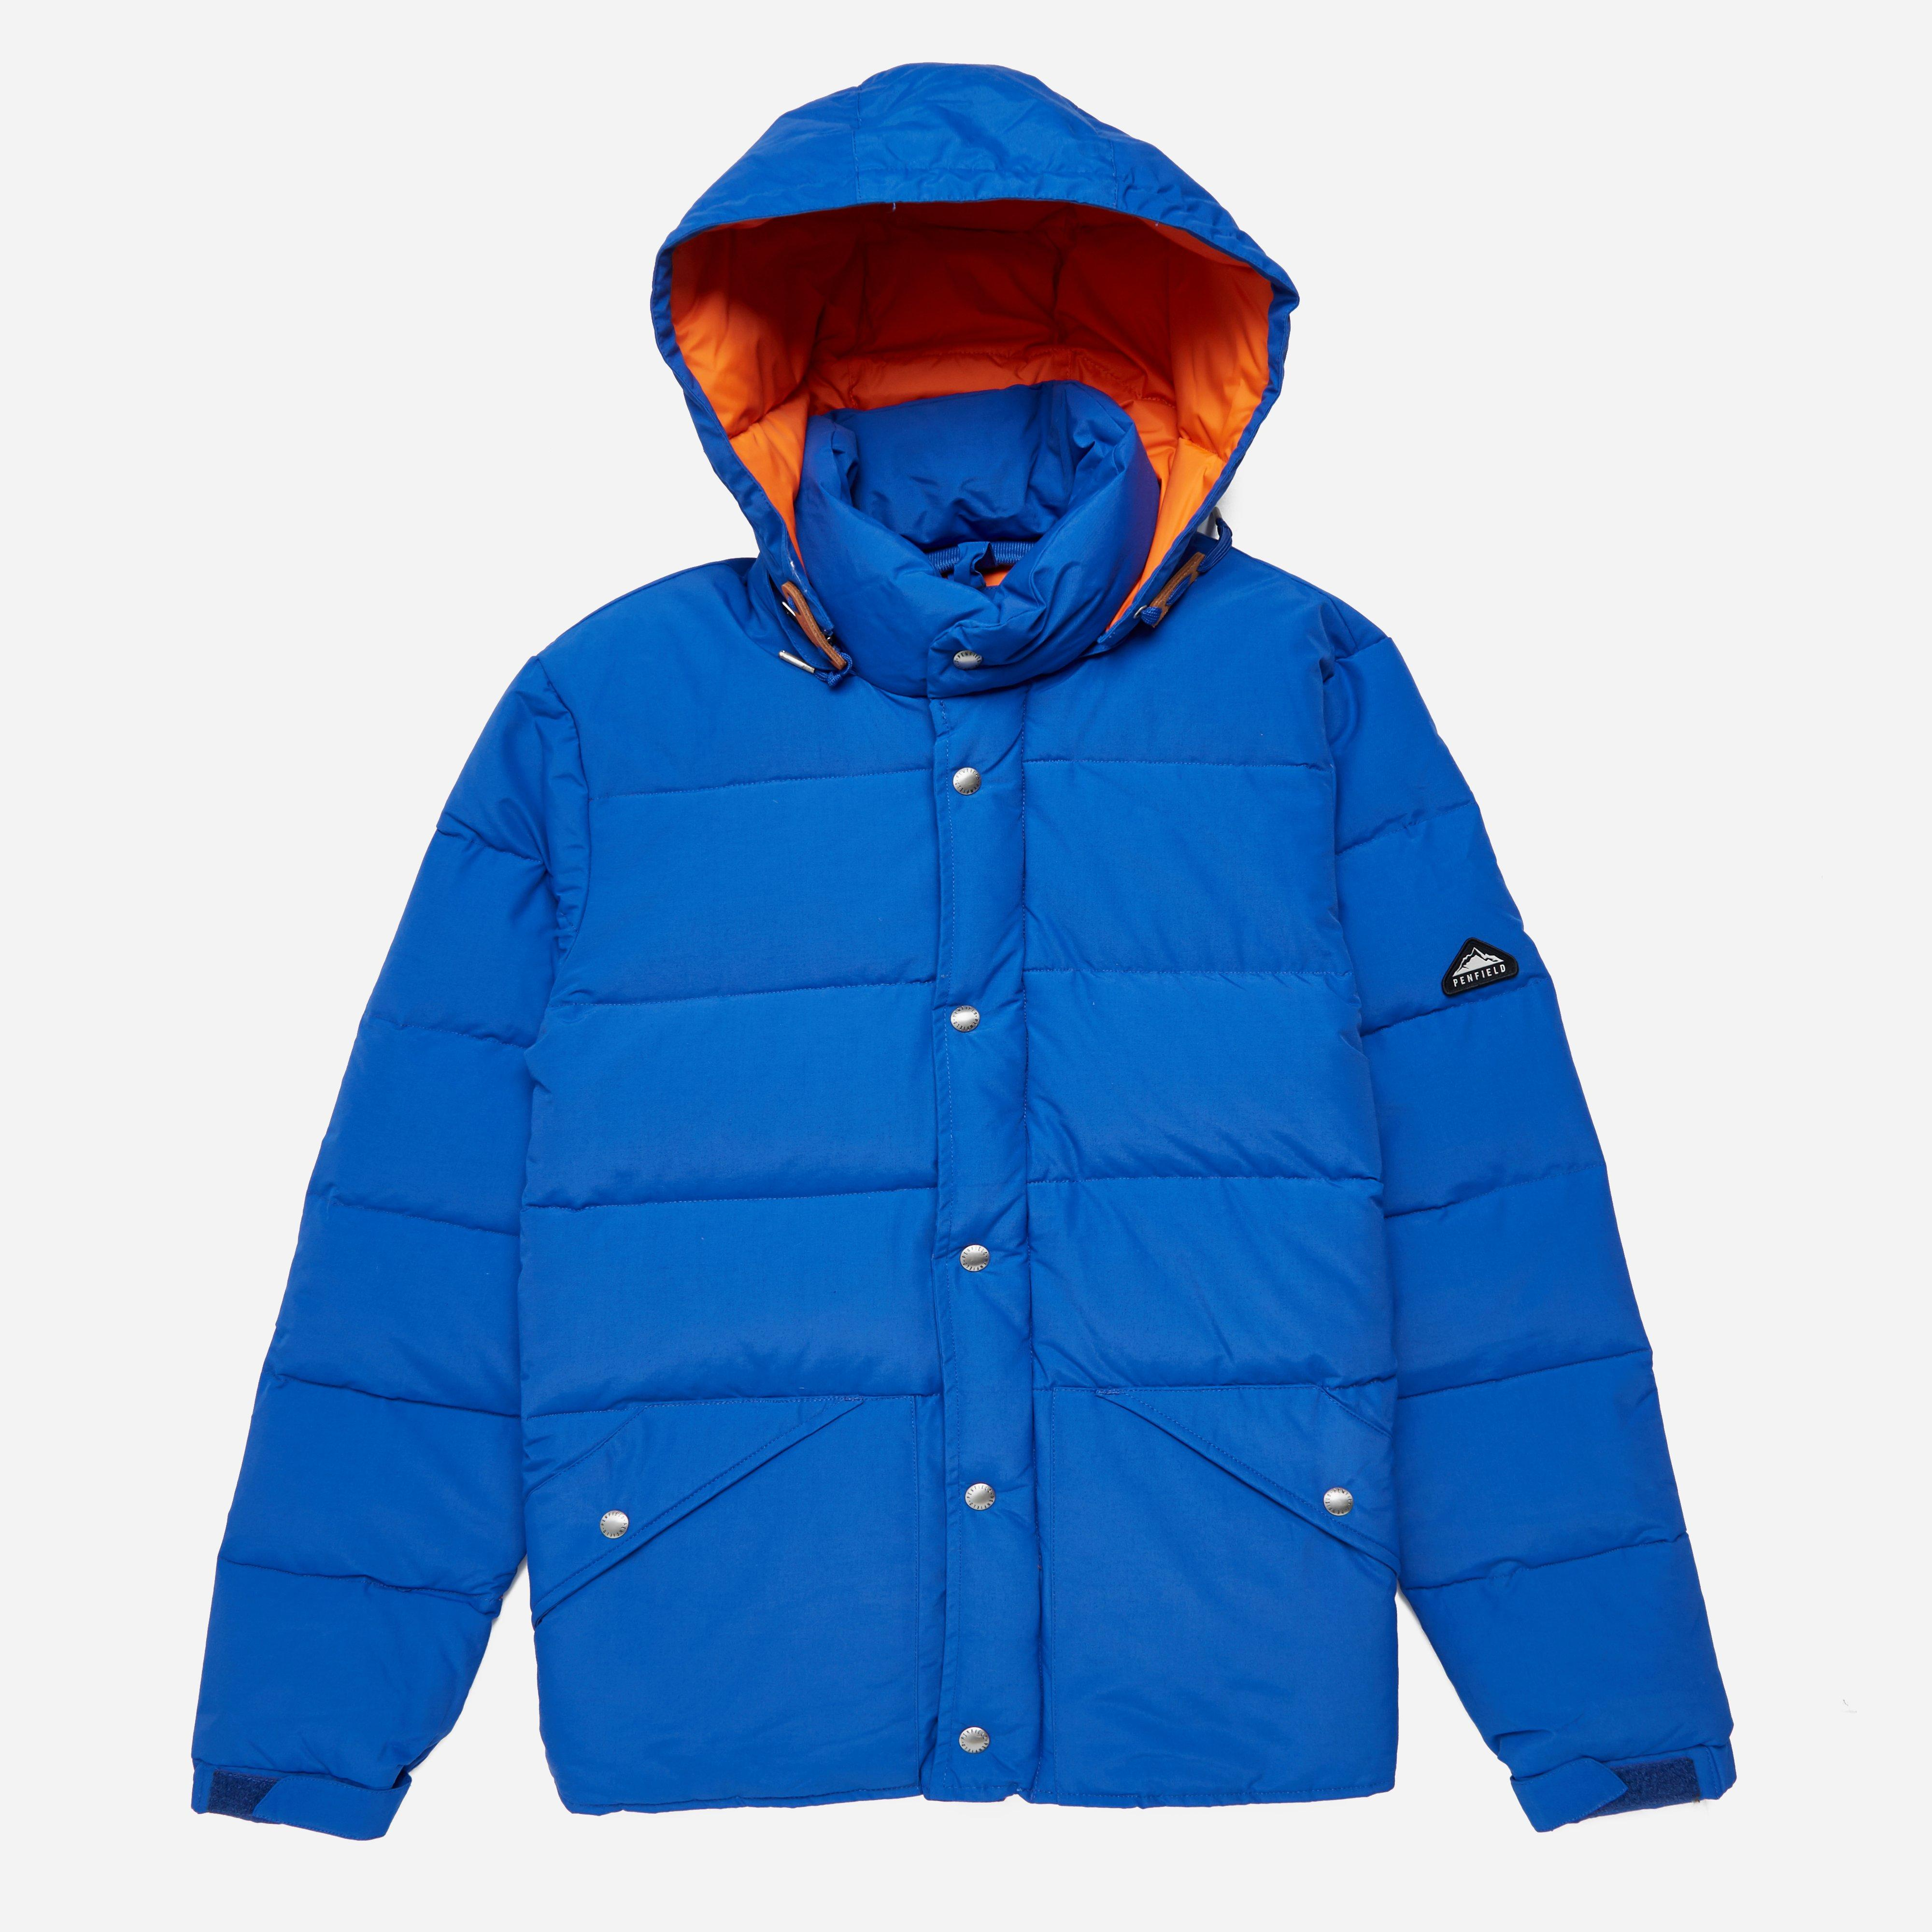 Penfield Bowerbridge Jacket